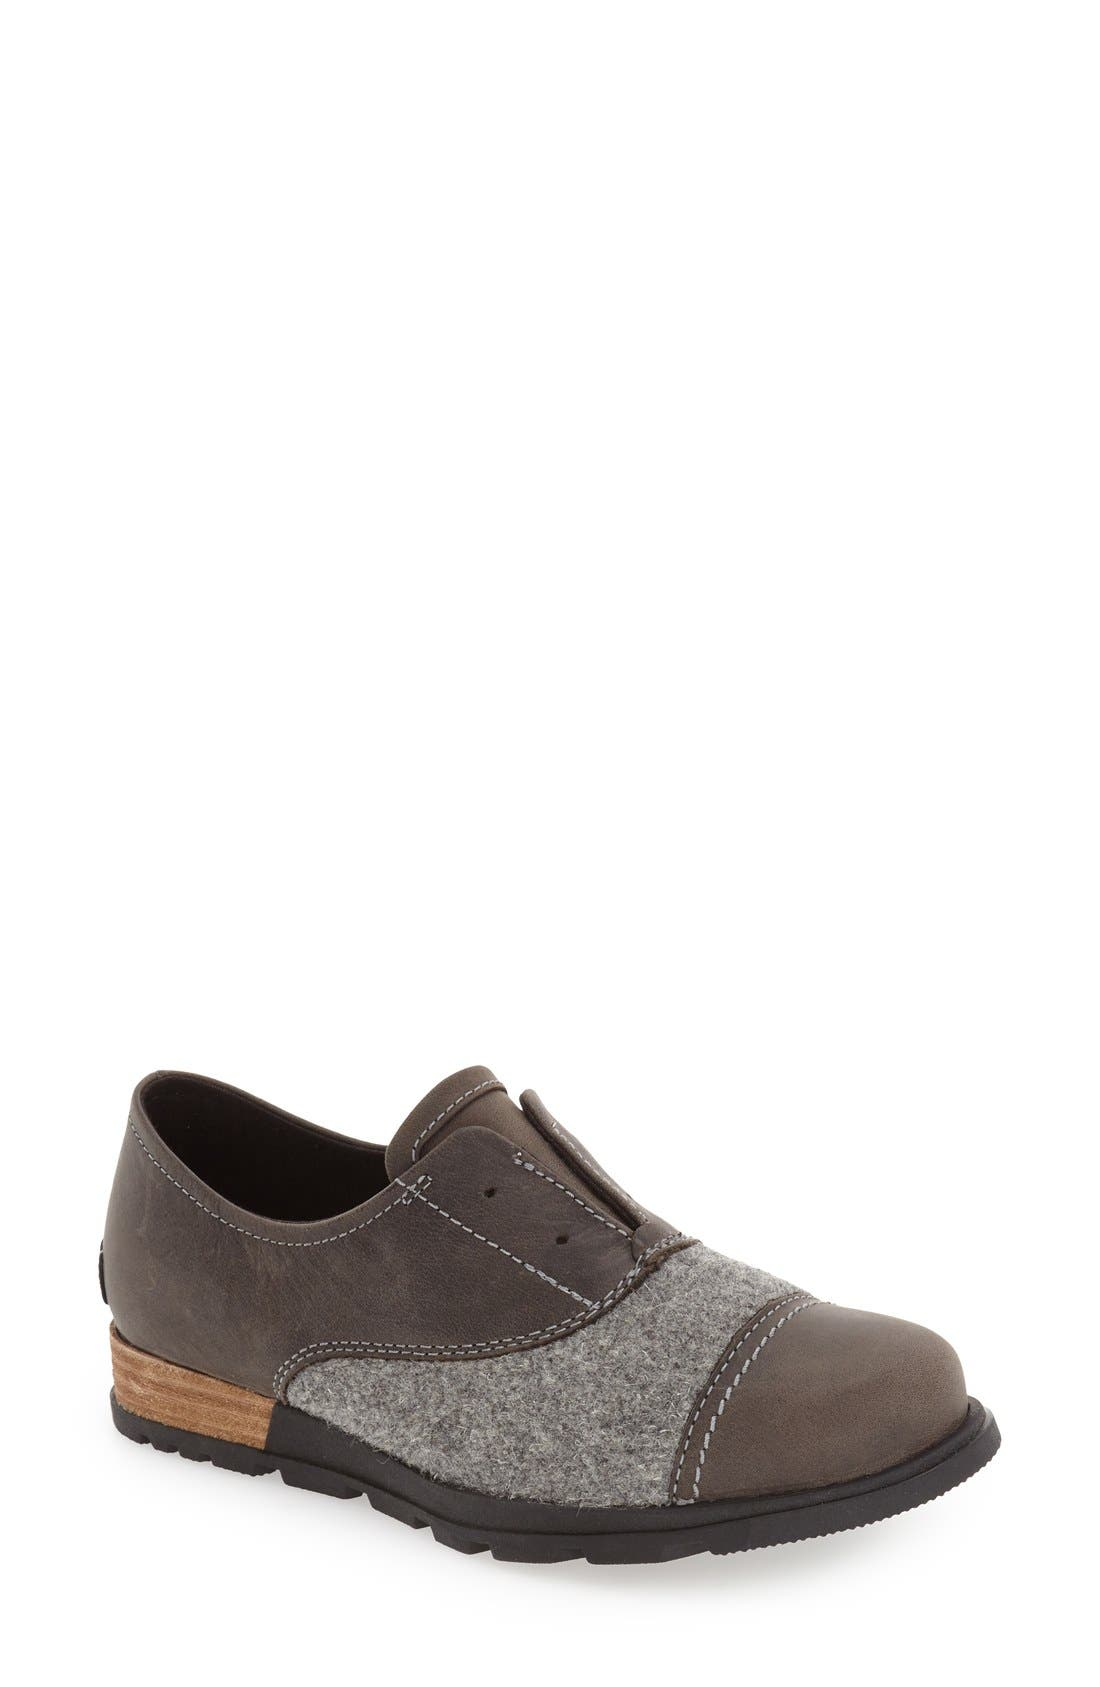 SOREL 'Major' Slip-On Oxford (Women)